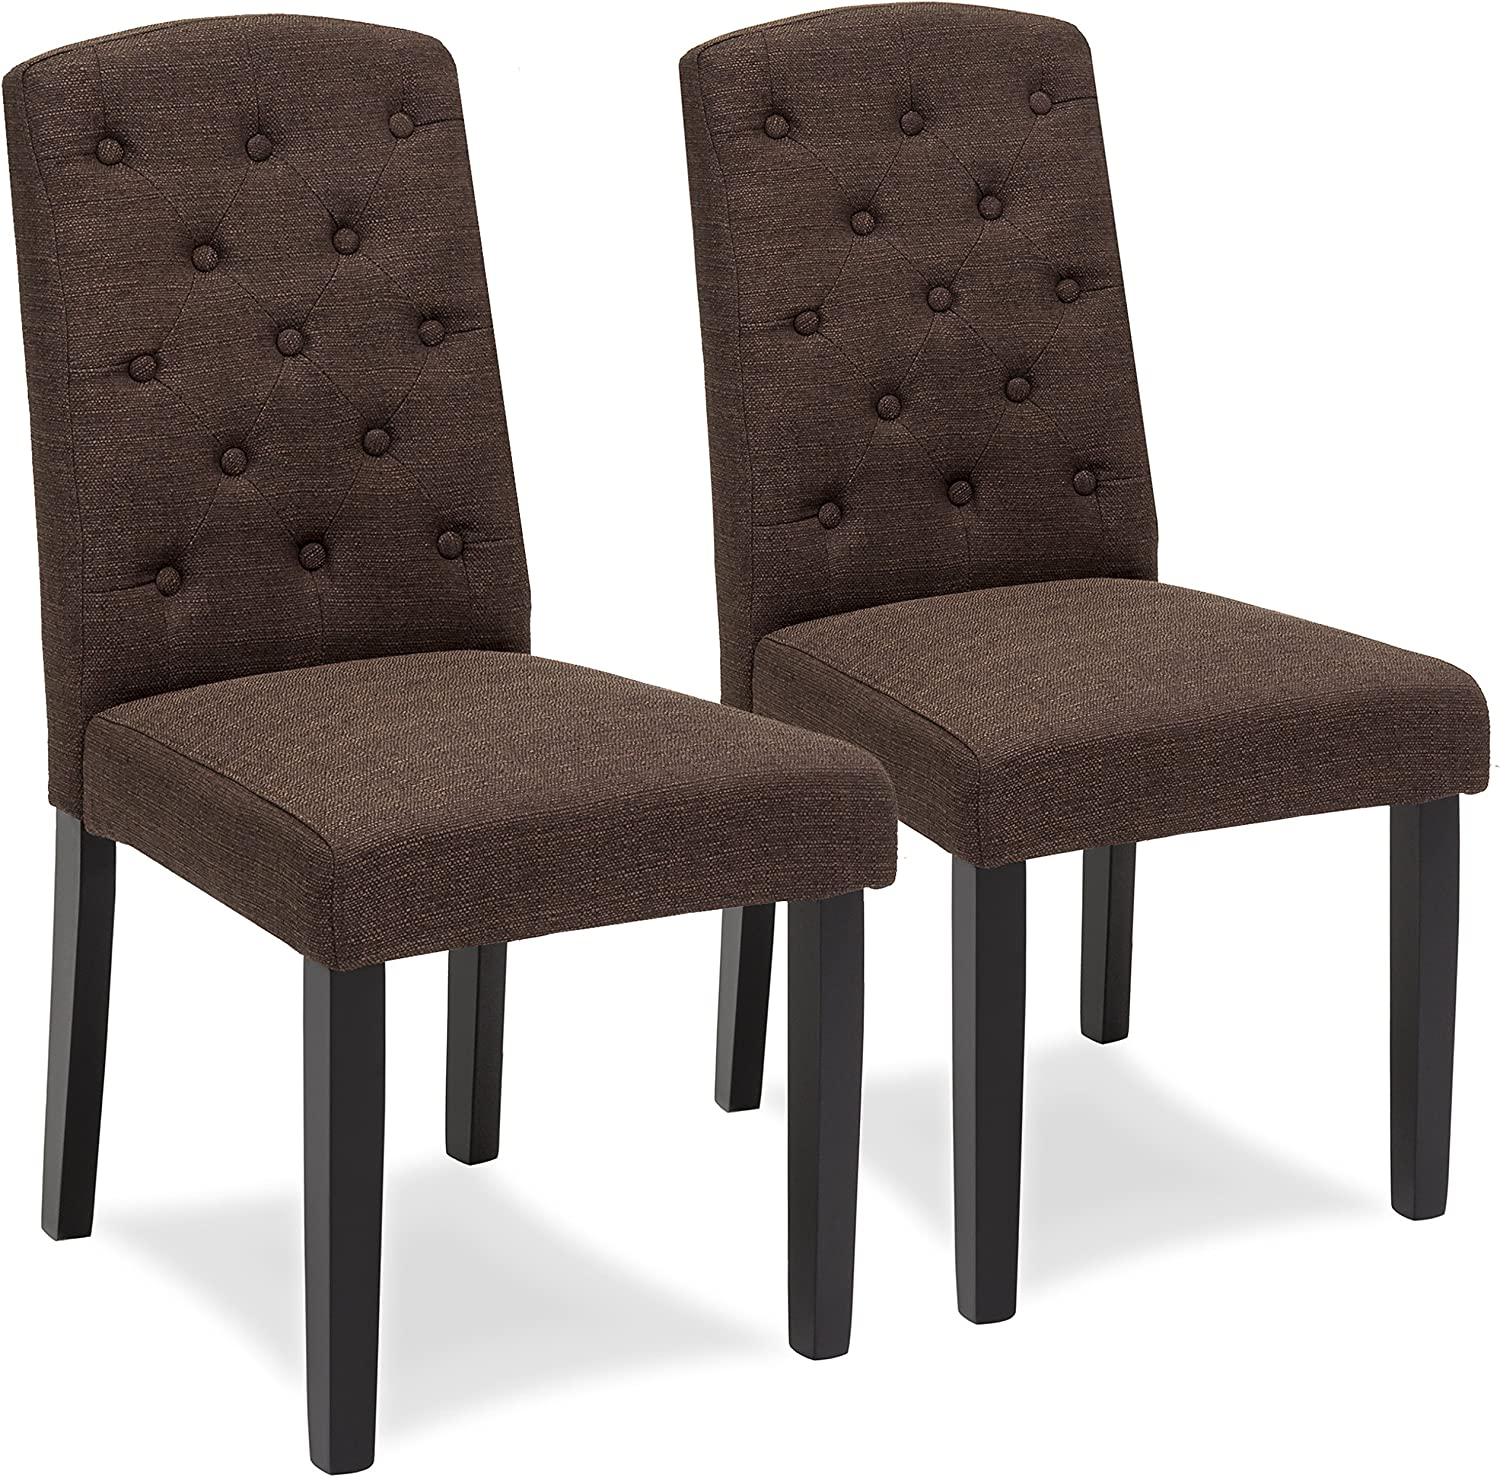 Best Choice Products Fabric Parsons Dining Chairs for Home Dining and Living Room w Tufted Backrest, Wood Legs, Set of 2, Espresso